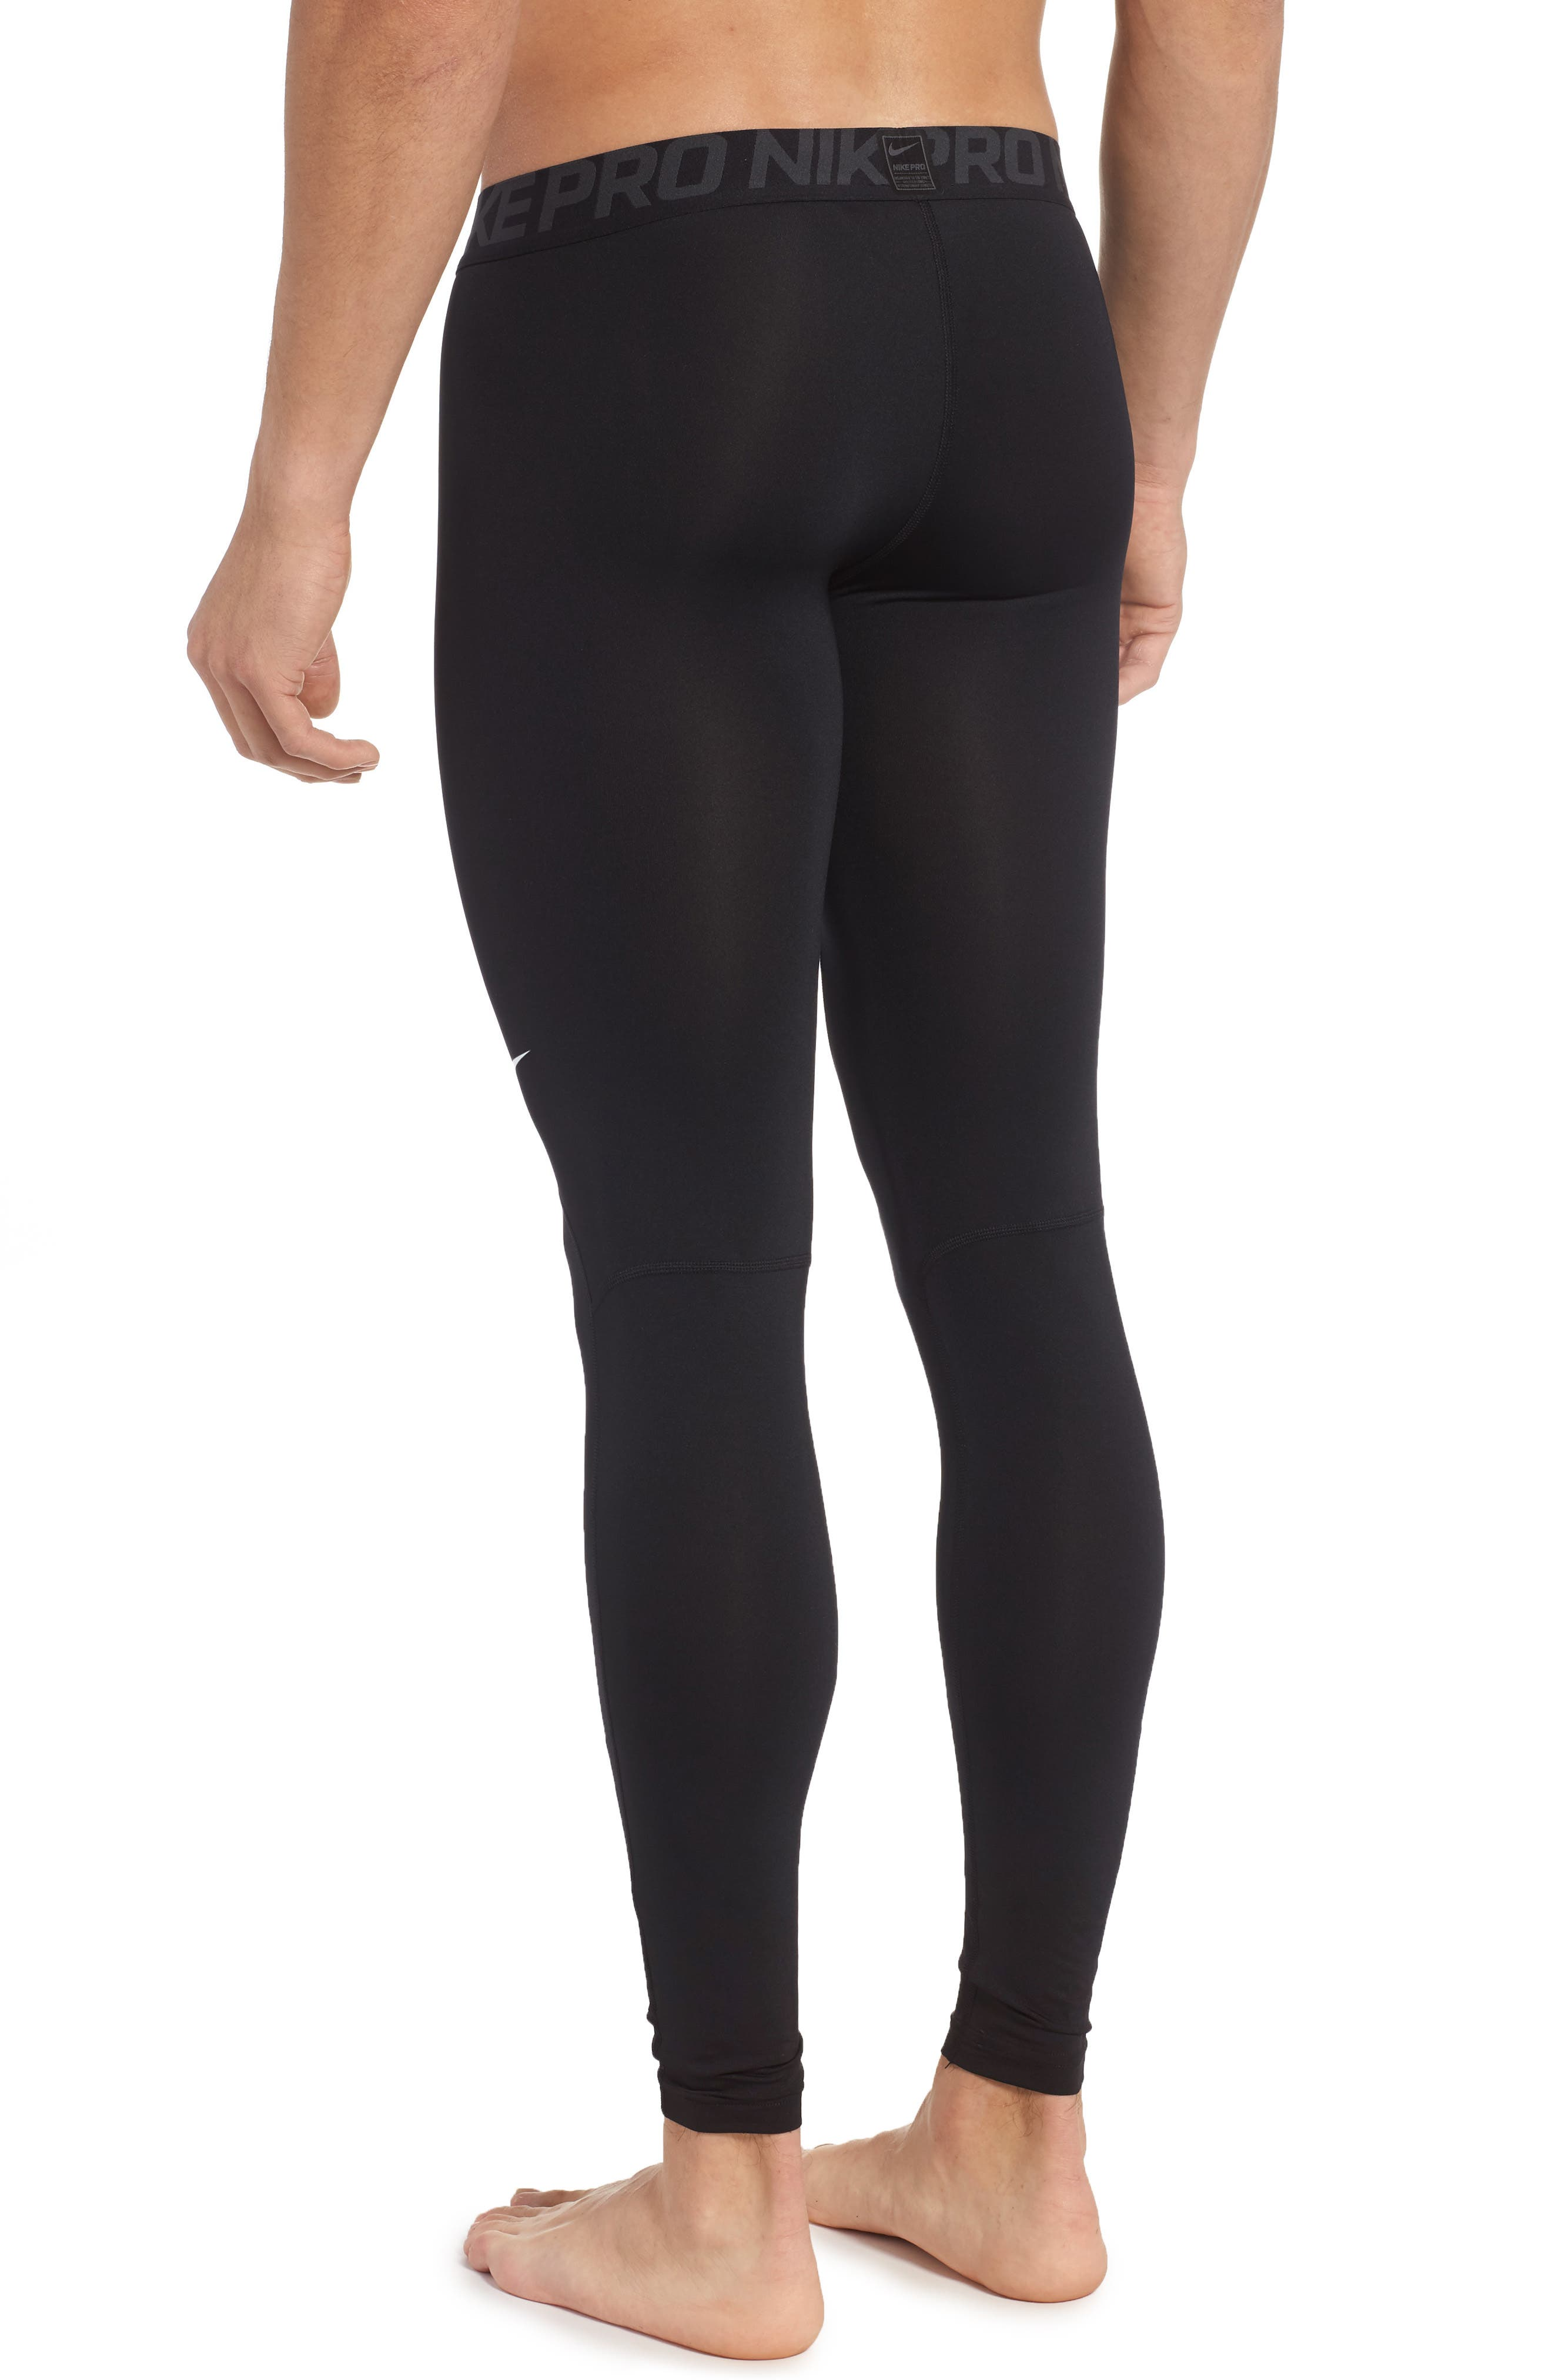 Pro Athletic Tights,                             Alternate thumbnail 2, color,                             Black/ Anthracite/ White